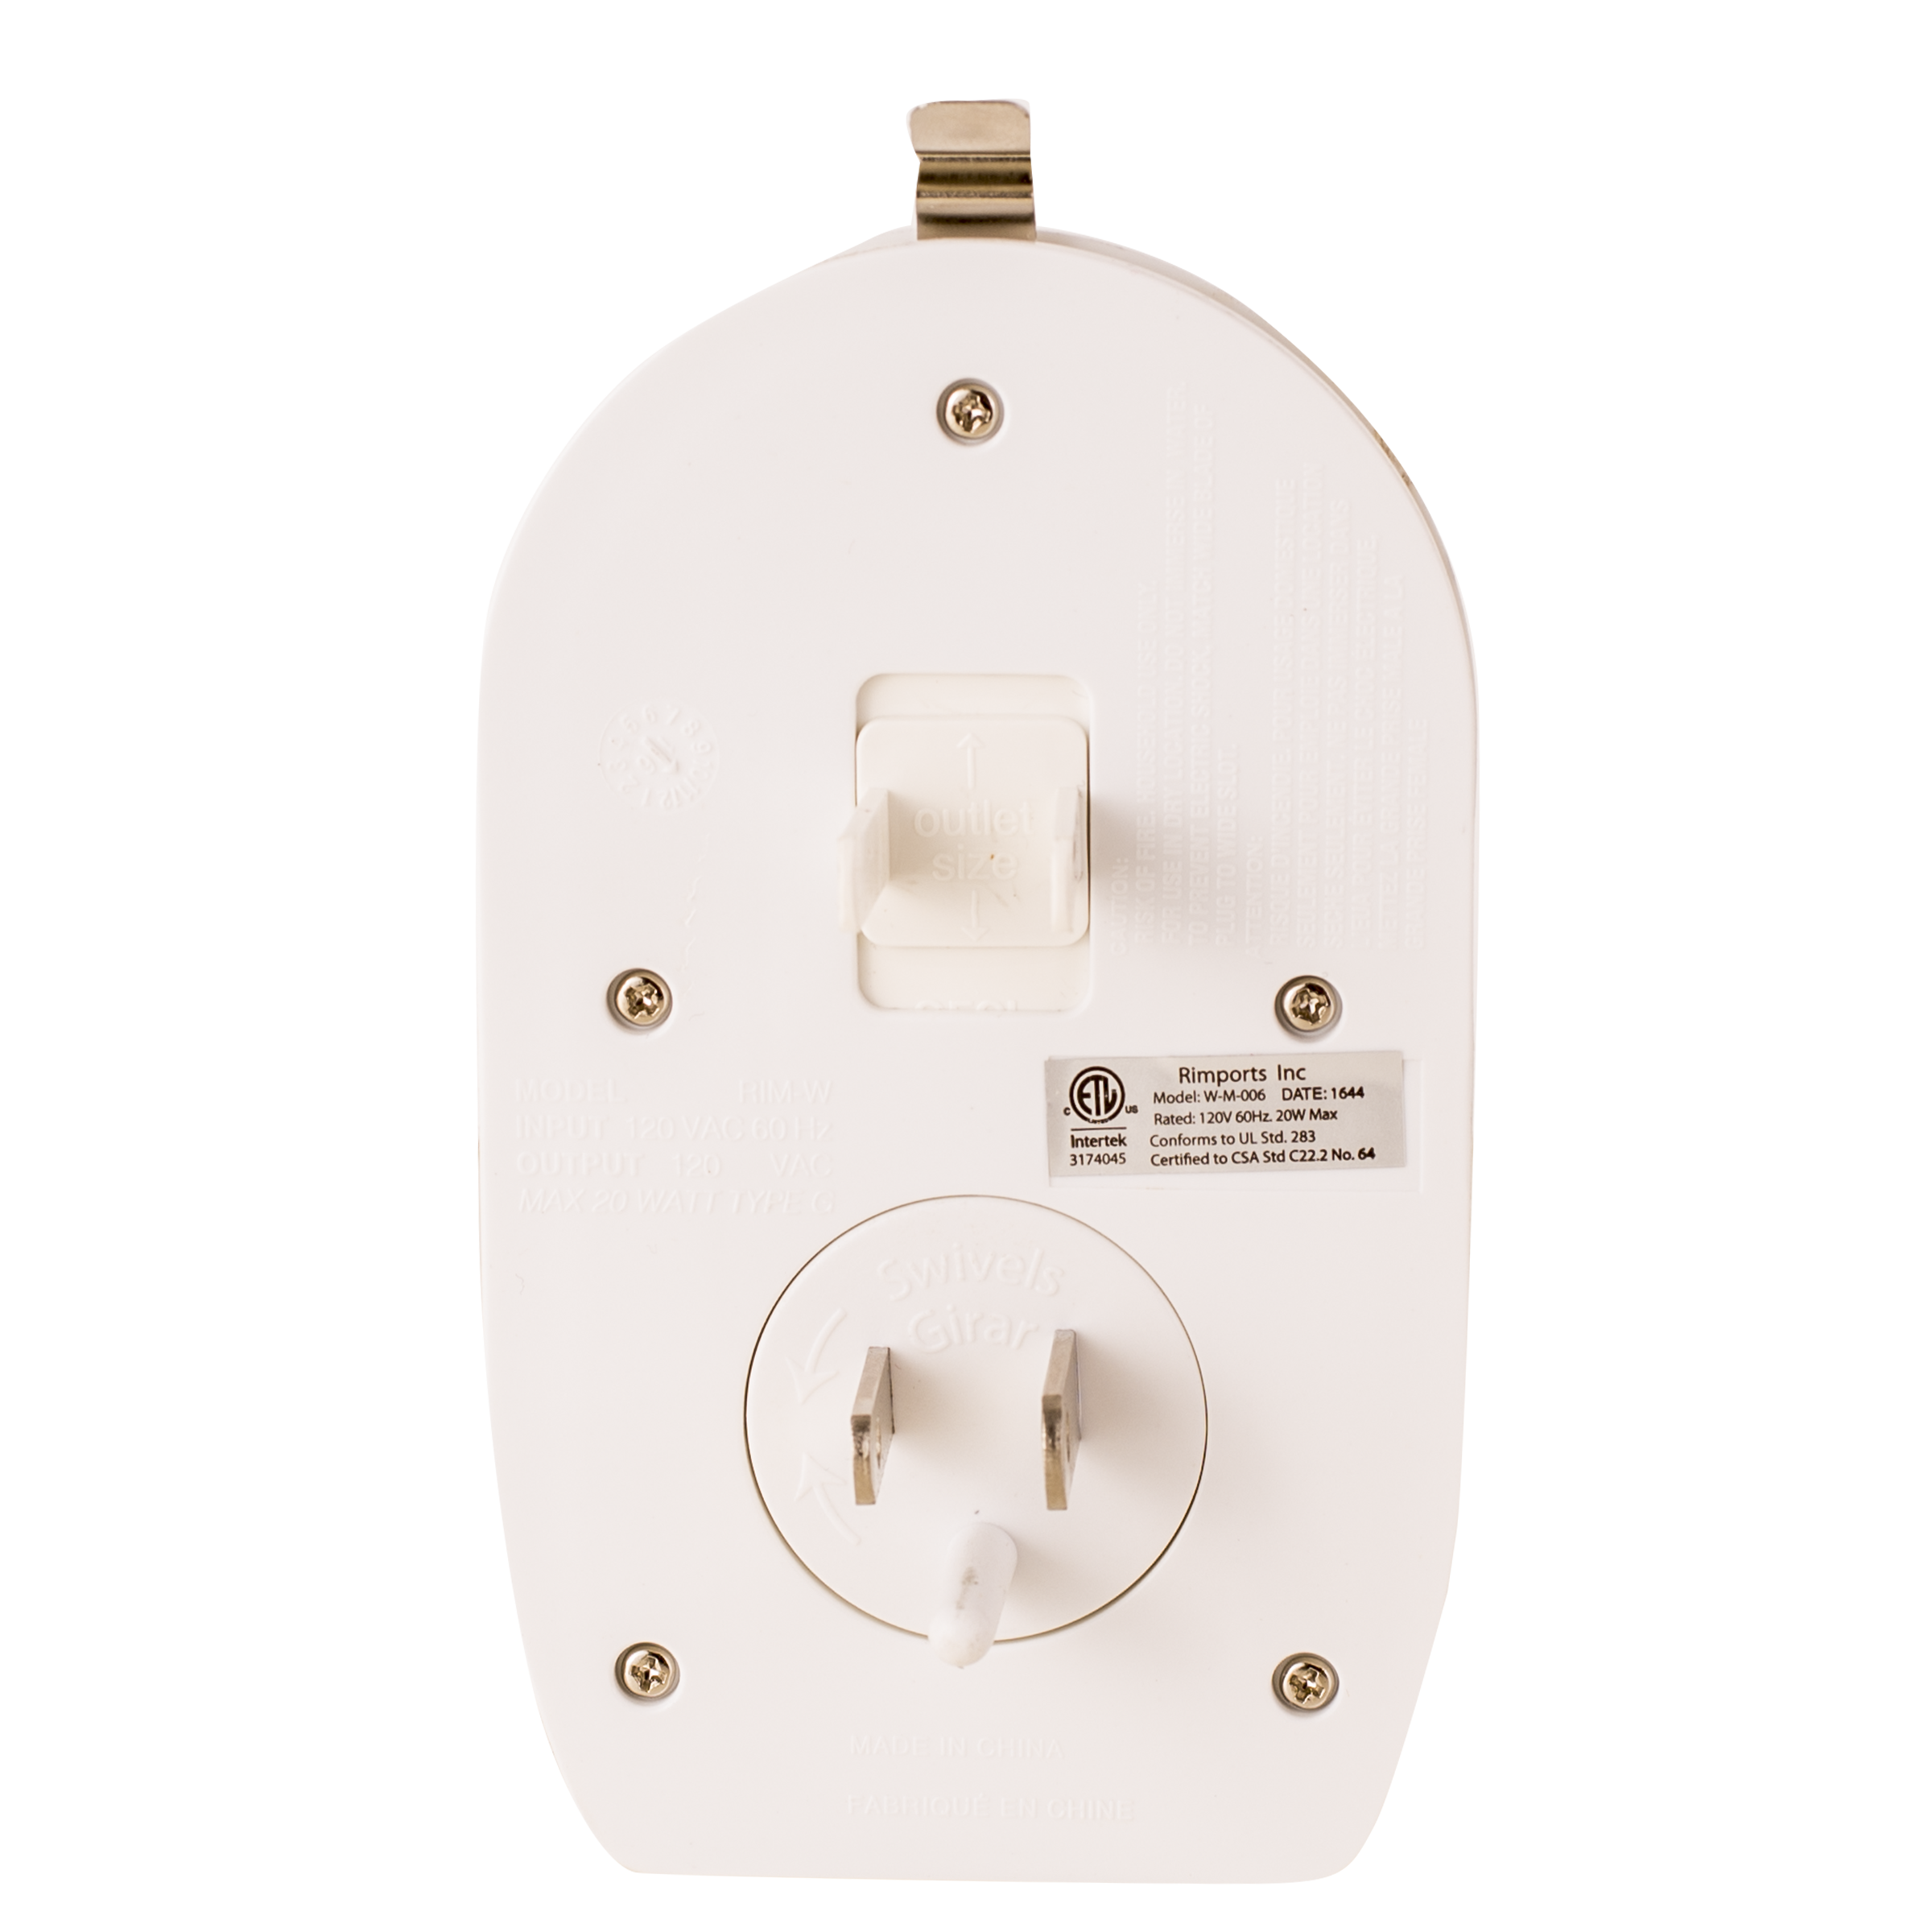 - Adjustable plugs to fit any outlet orientation